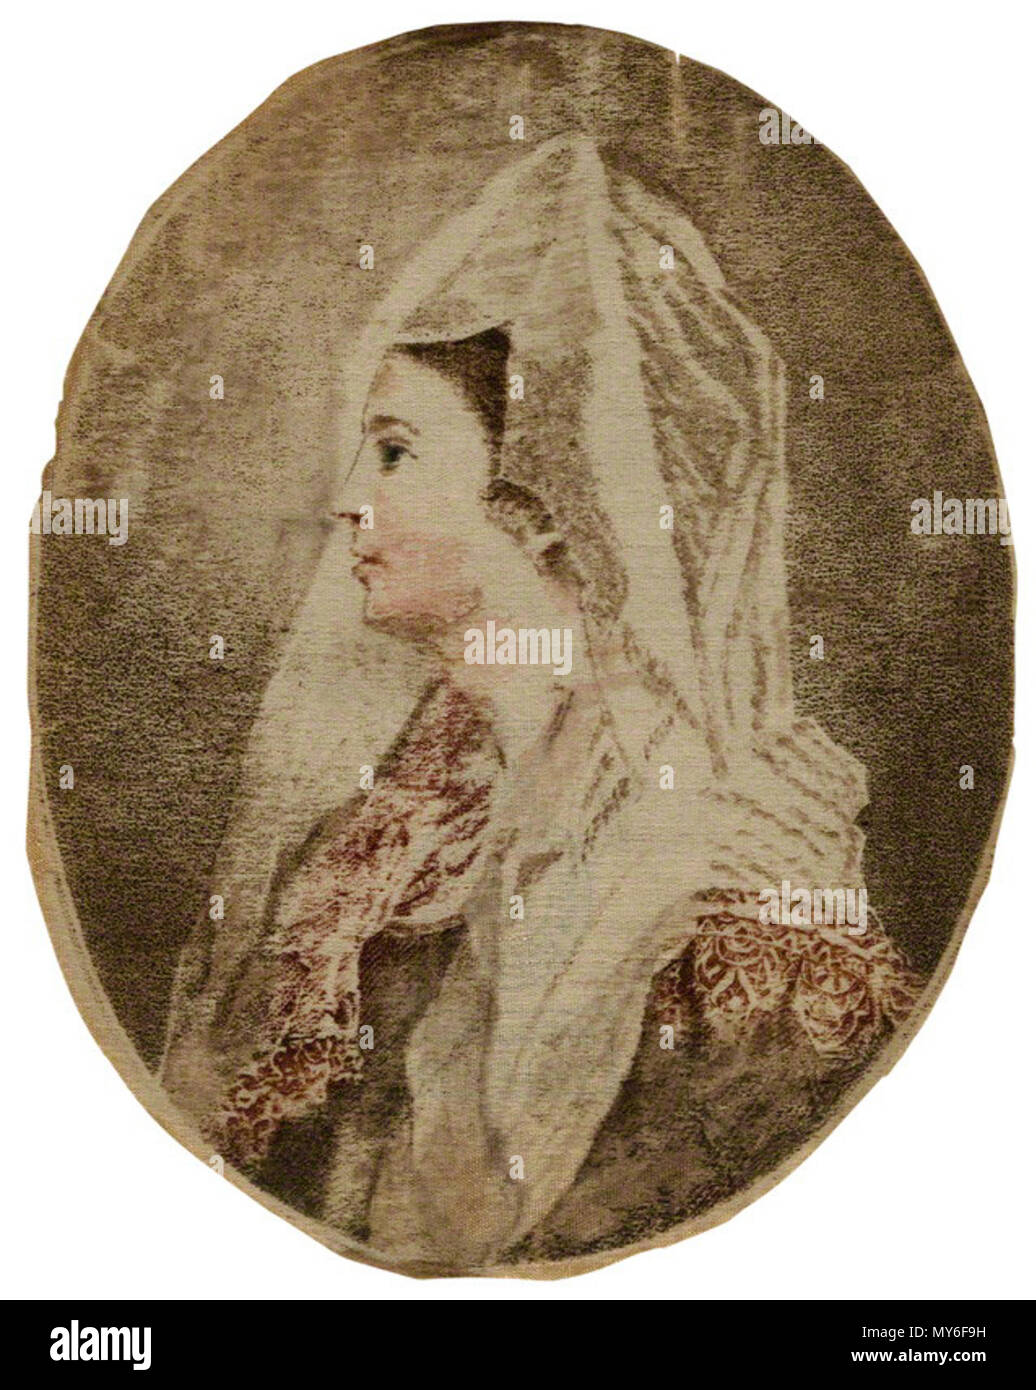 . English: Ann Cargill (née Brown) as Clara in 'The Duenna' probably published by J. Walker, after Matthew William Peters hand-coloured stipple engraving on silk, 1780? 3 7/8 in. x 3 1/8 in. (100 mm x 79 mm) paper size Purchased, 1966 Reference Collection NPG D21566 . 14 December 2013, 15:07:45. probably published by J. Walker, after Matthew William Peters 41 Ann cargill mw114486 - Stock Image